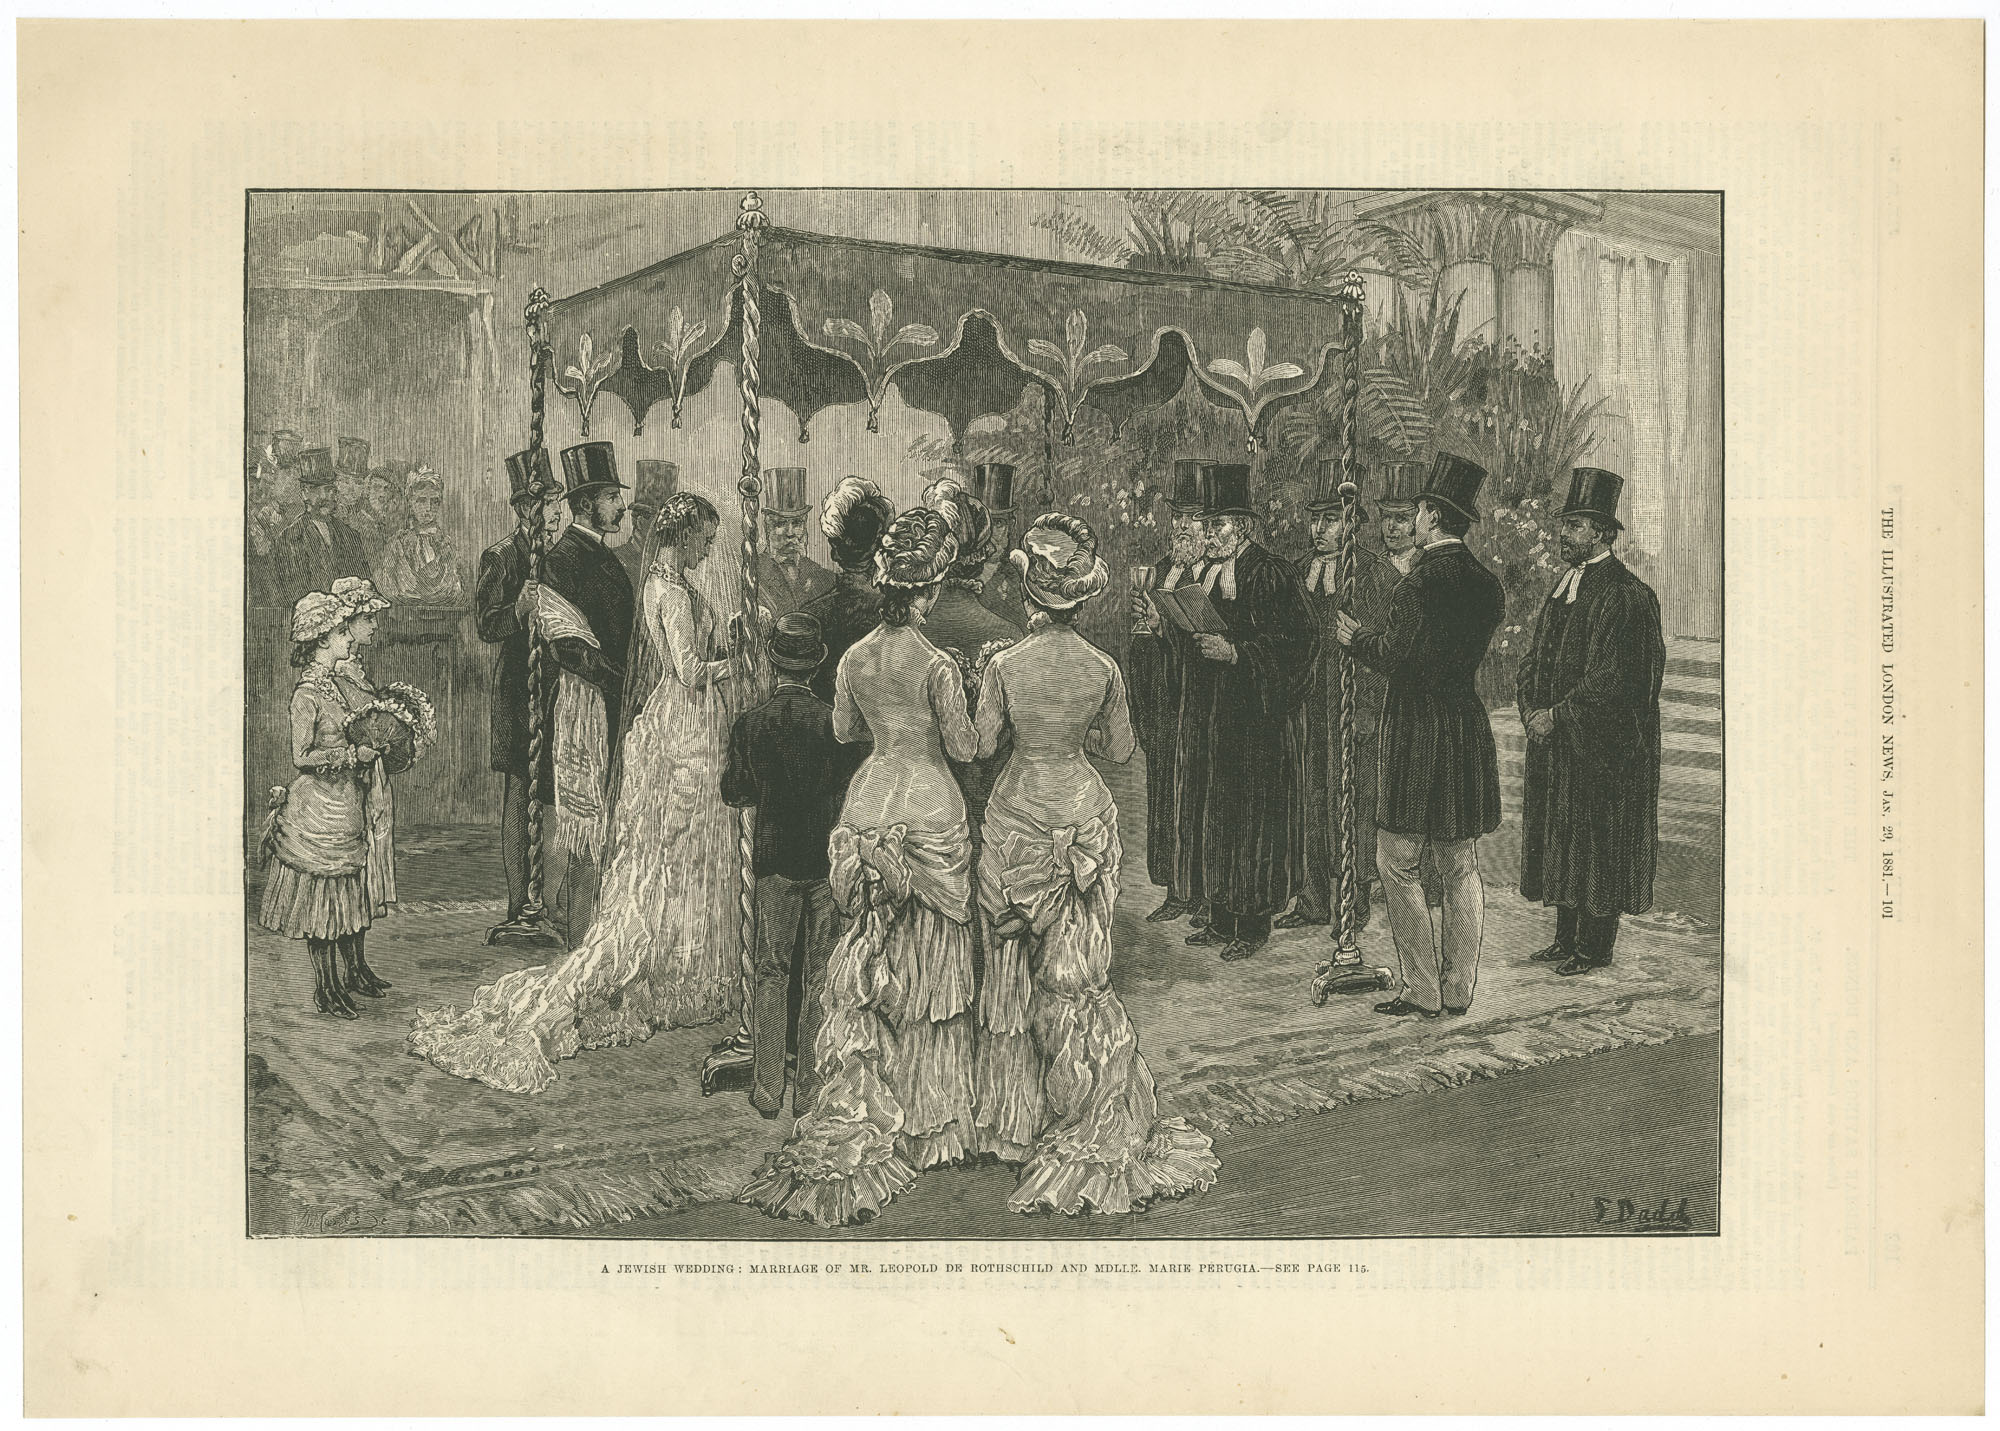 A Jewish wedding: marriage of Mr. Leopold de Rothschild and Mdlle. Marie Perugia